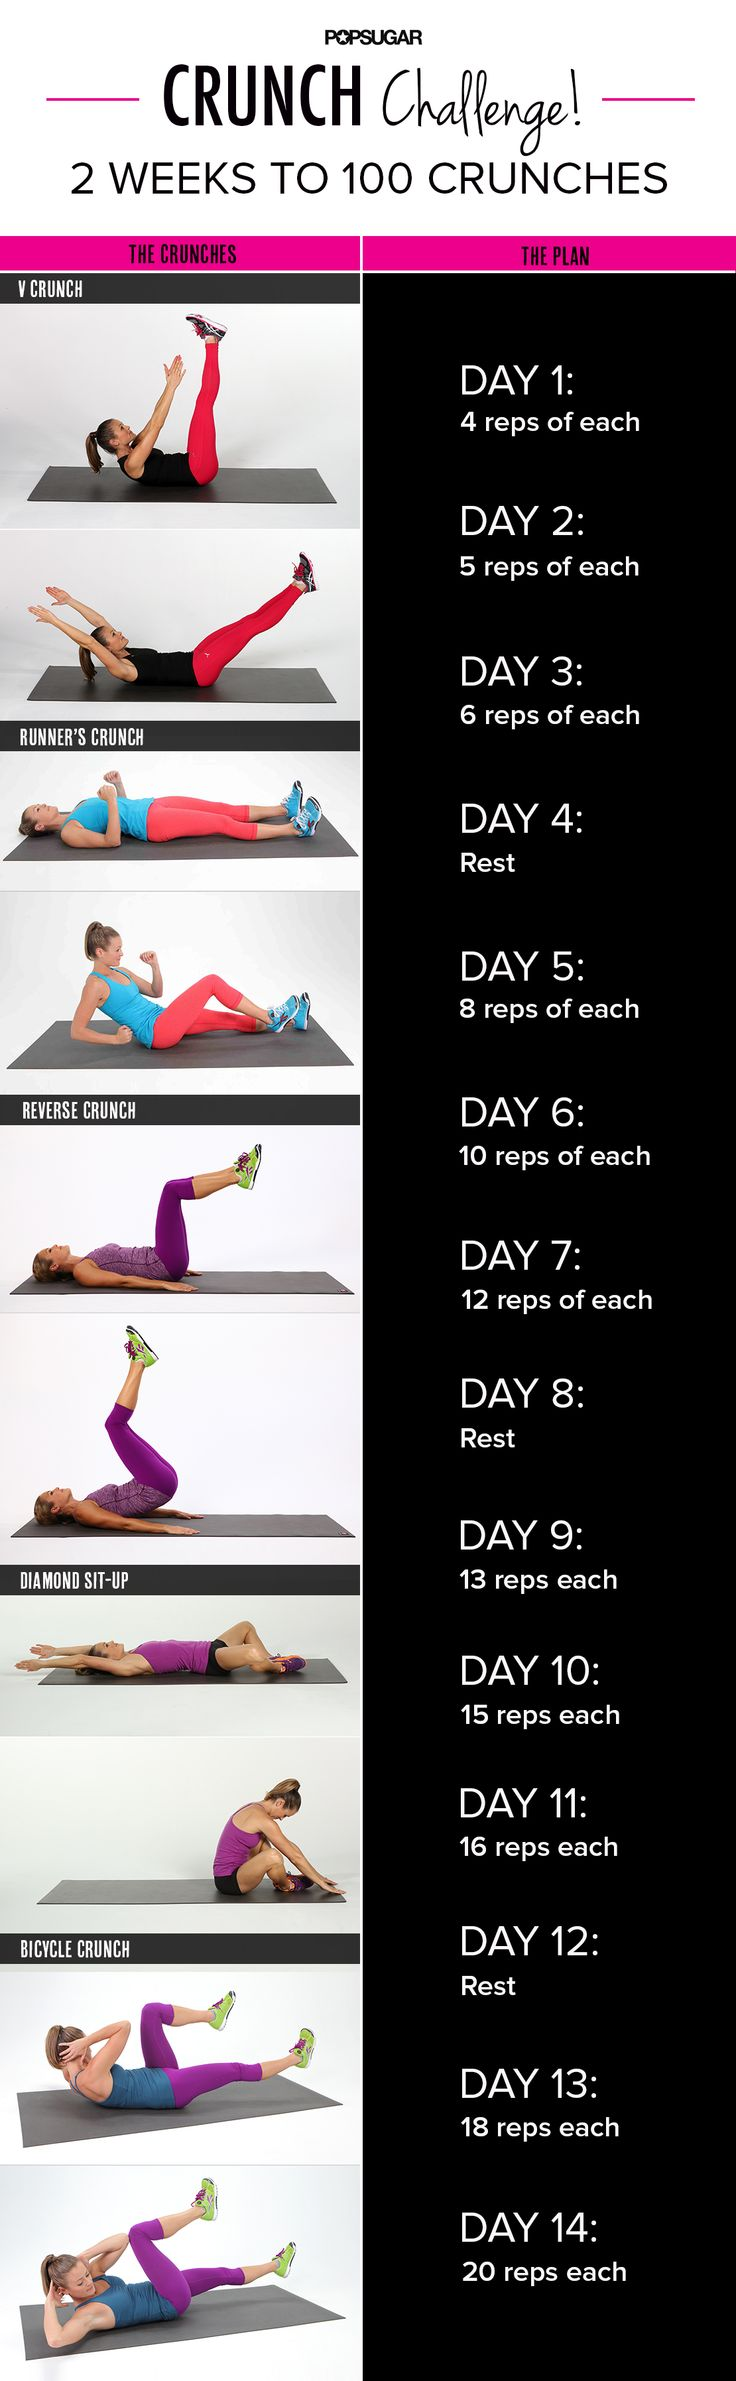 It's Crunch Time! 2-Week Challenge to 100 Crunches: 2 Week Crunch, Workout Challenge, Crunch Challenge, Fitness Exercise, 100 Crunches, Work Out, 2 Week Challenge, Ab Workouts, Fitness Workout